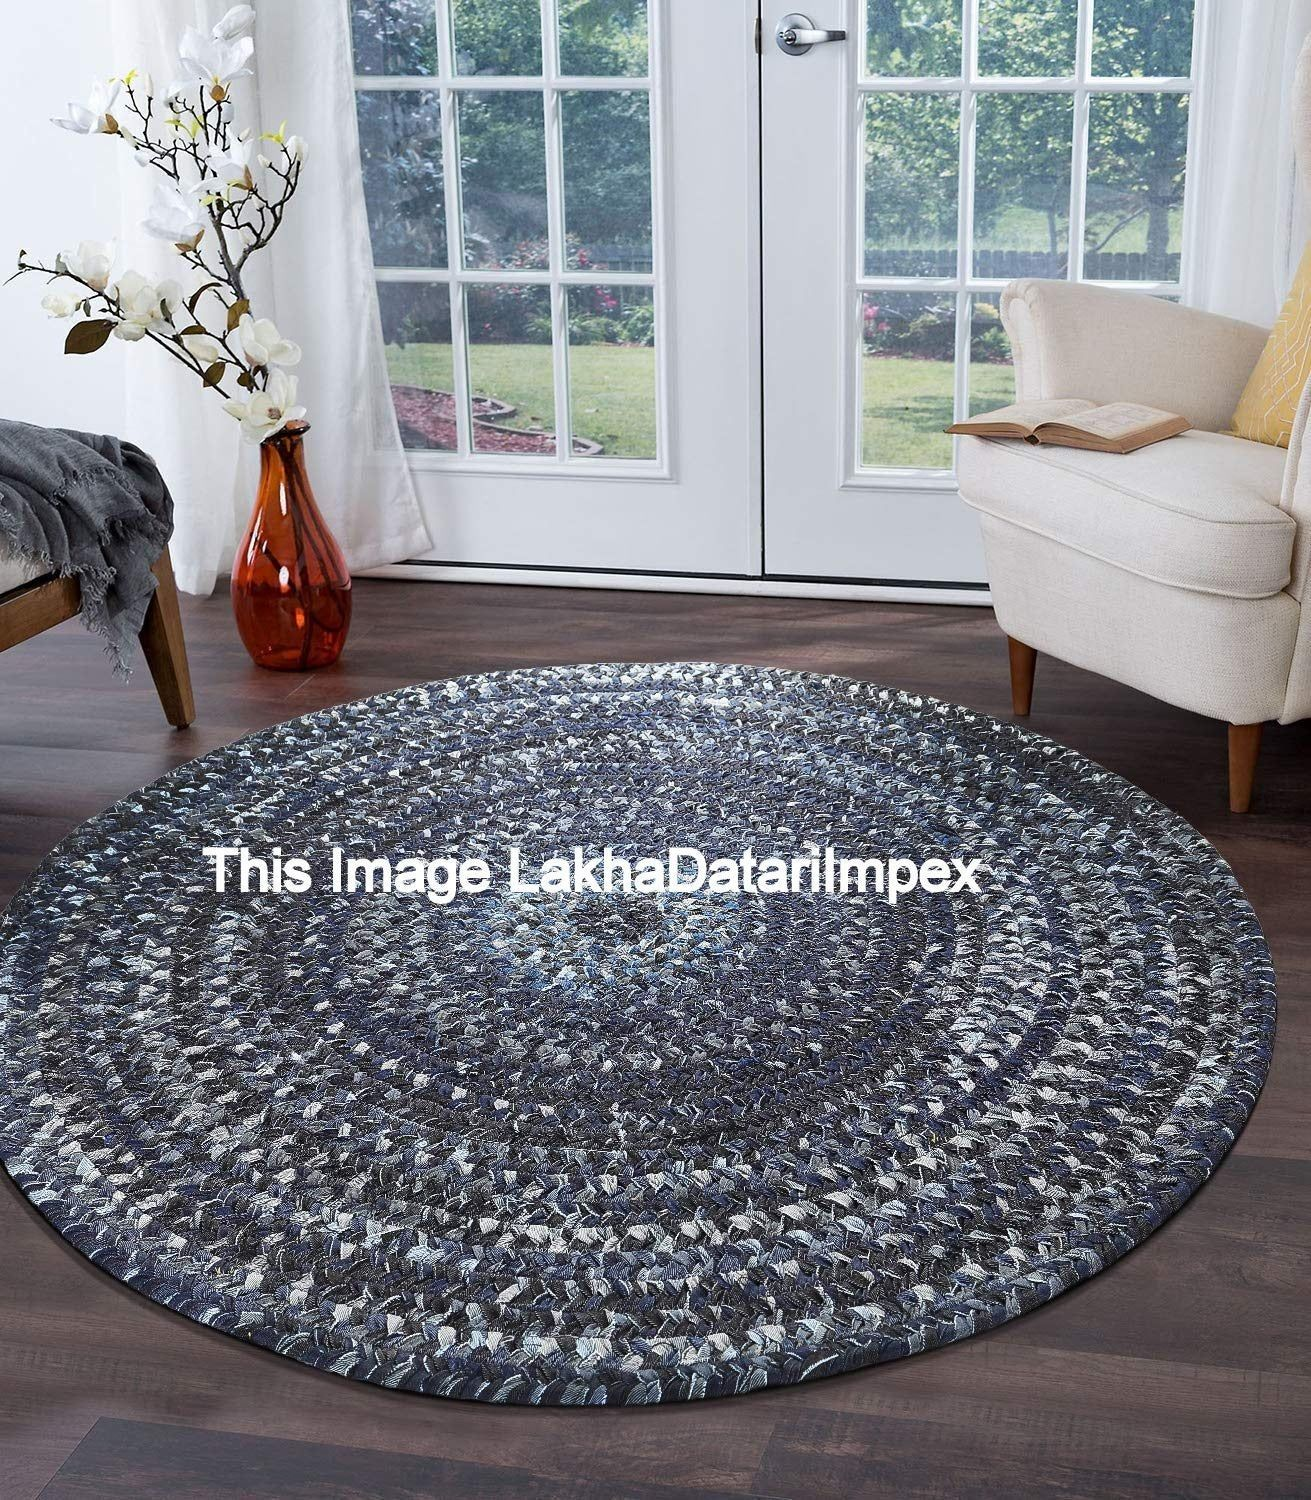 Home Decor Natural Jute Rug Round Jute Rug For Floor And Kitchen